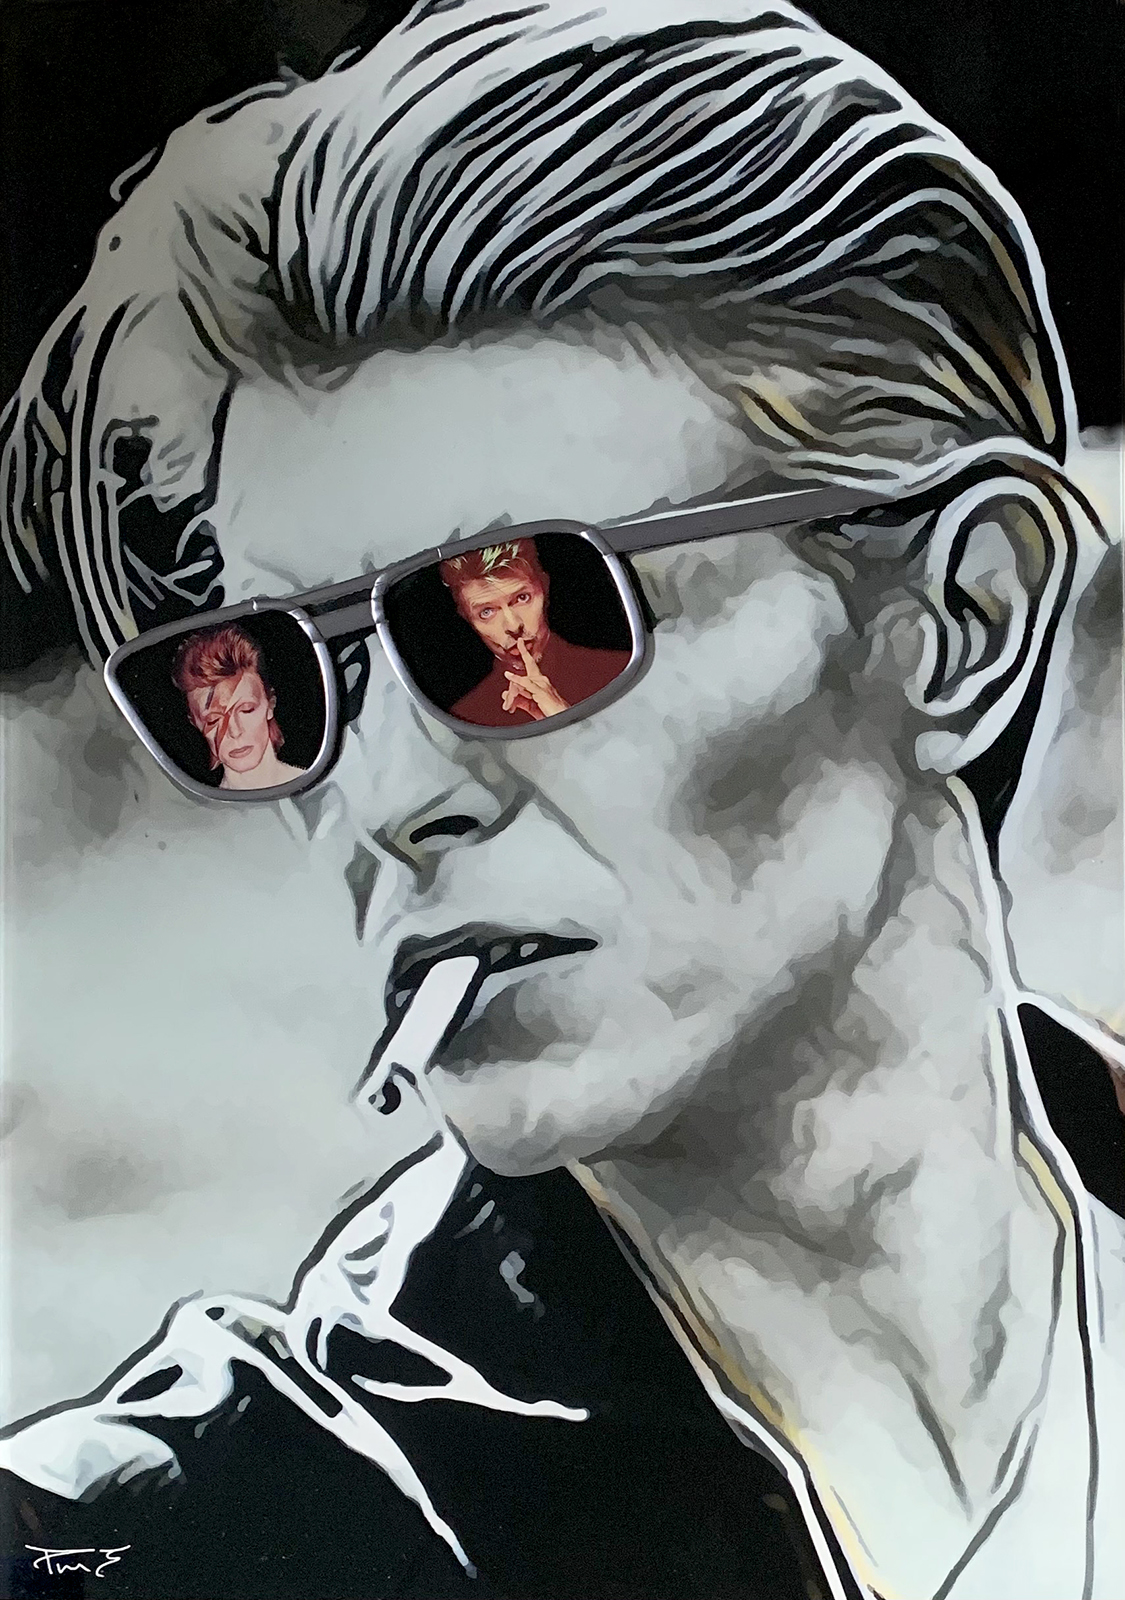 Through the Eyes of Bowie (Small) by Paul Marshall Johnson